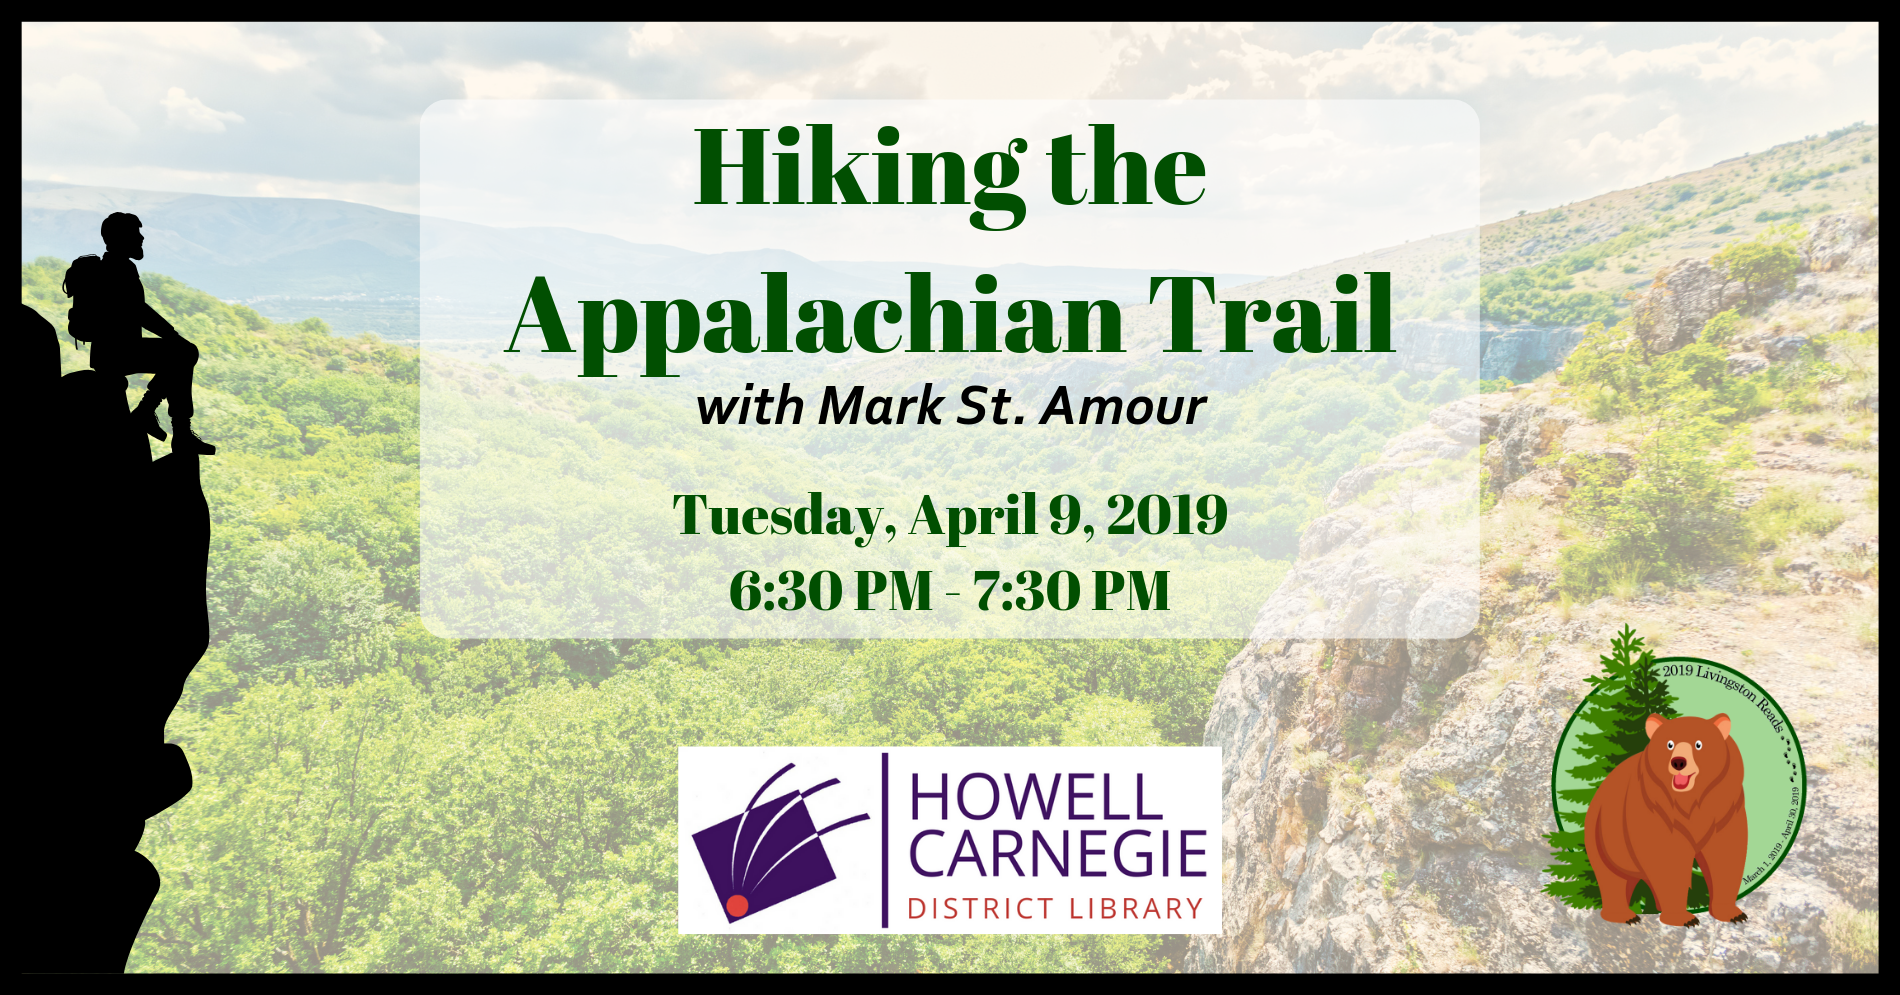 Hiking the Appalachian Trail with Mark St. Amour